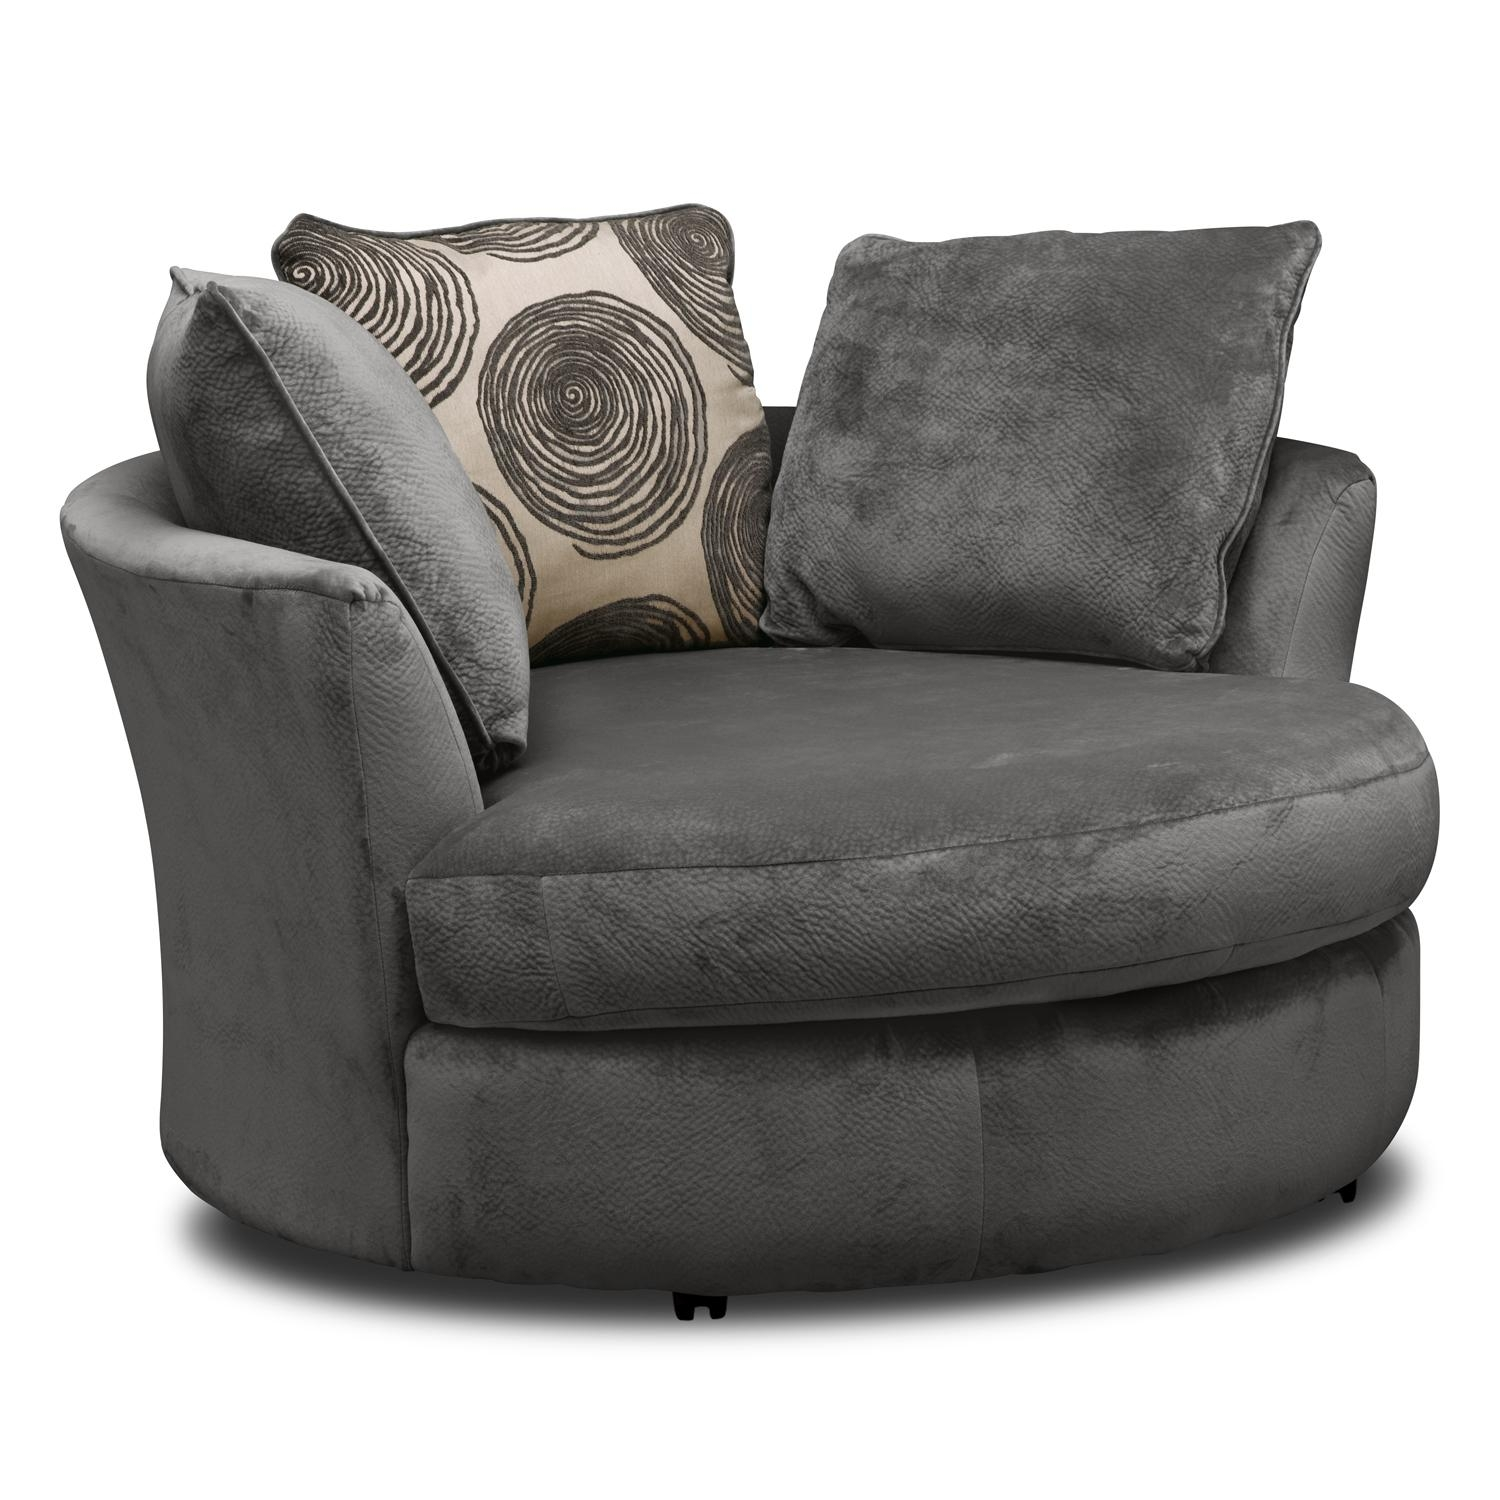 20 Inspirations Round Swivel Sofa Chairs Sofa Ideas